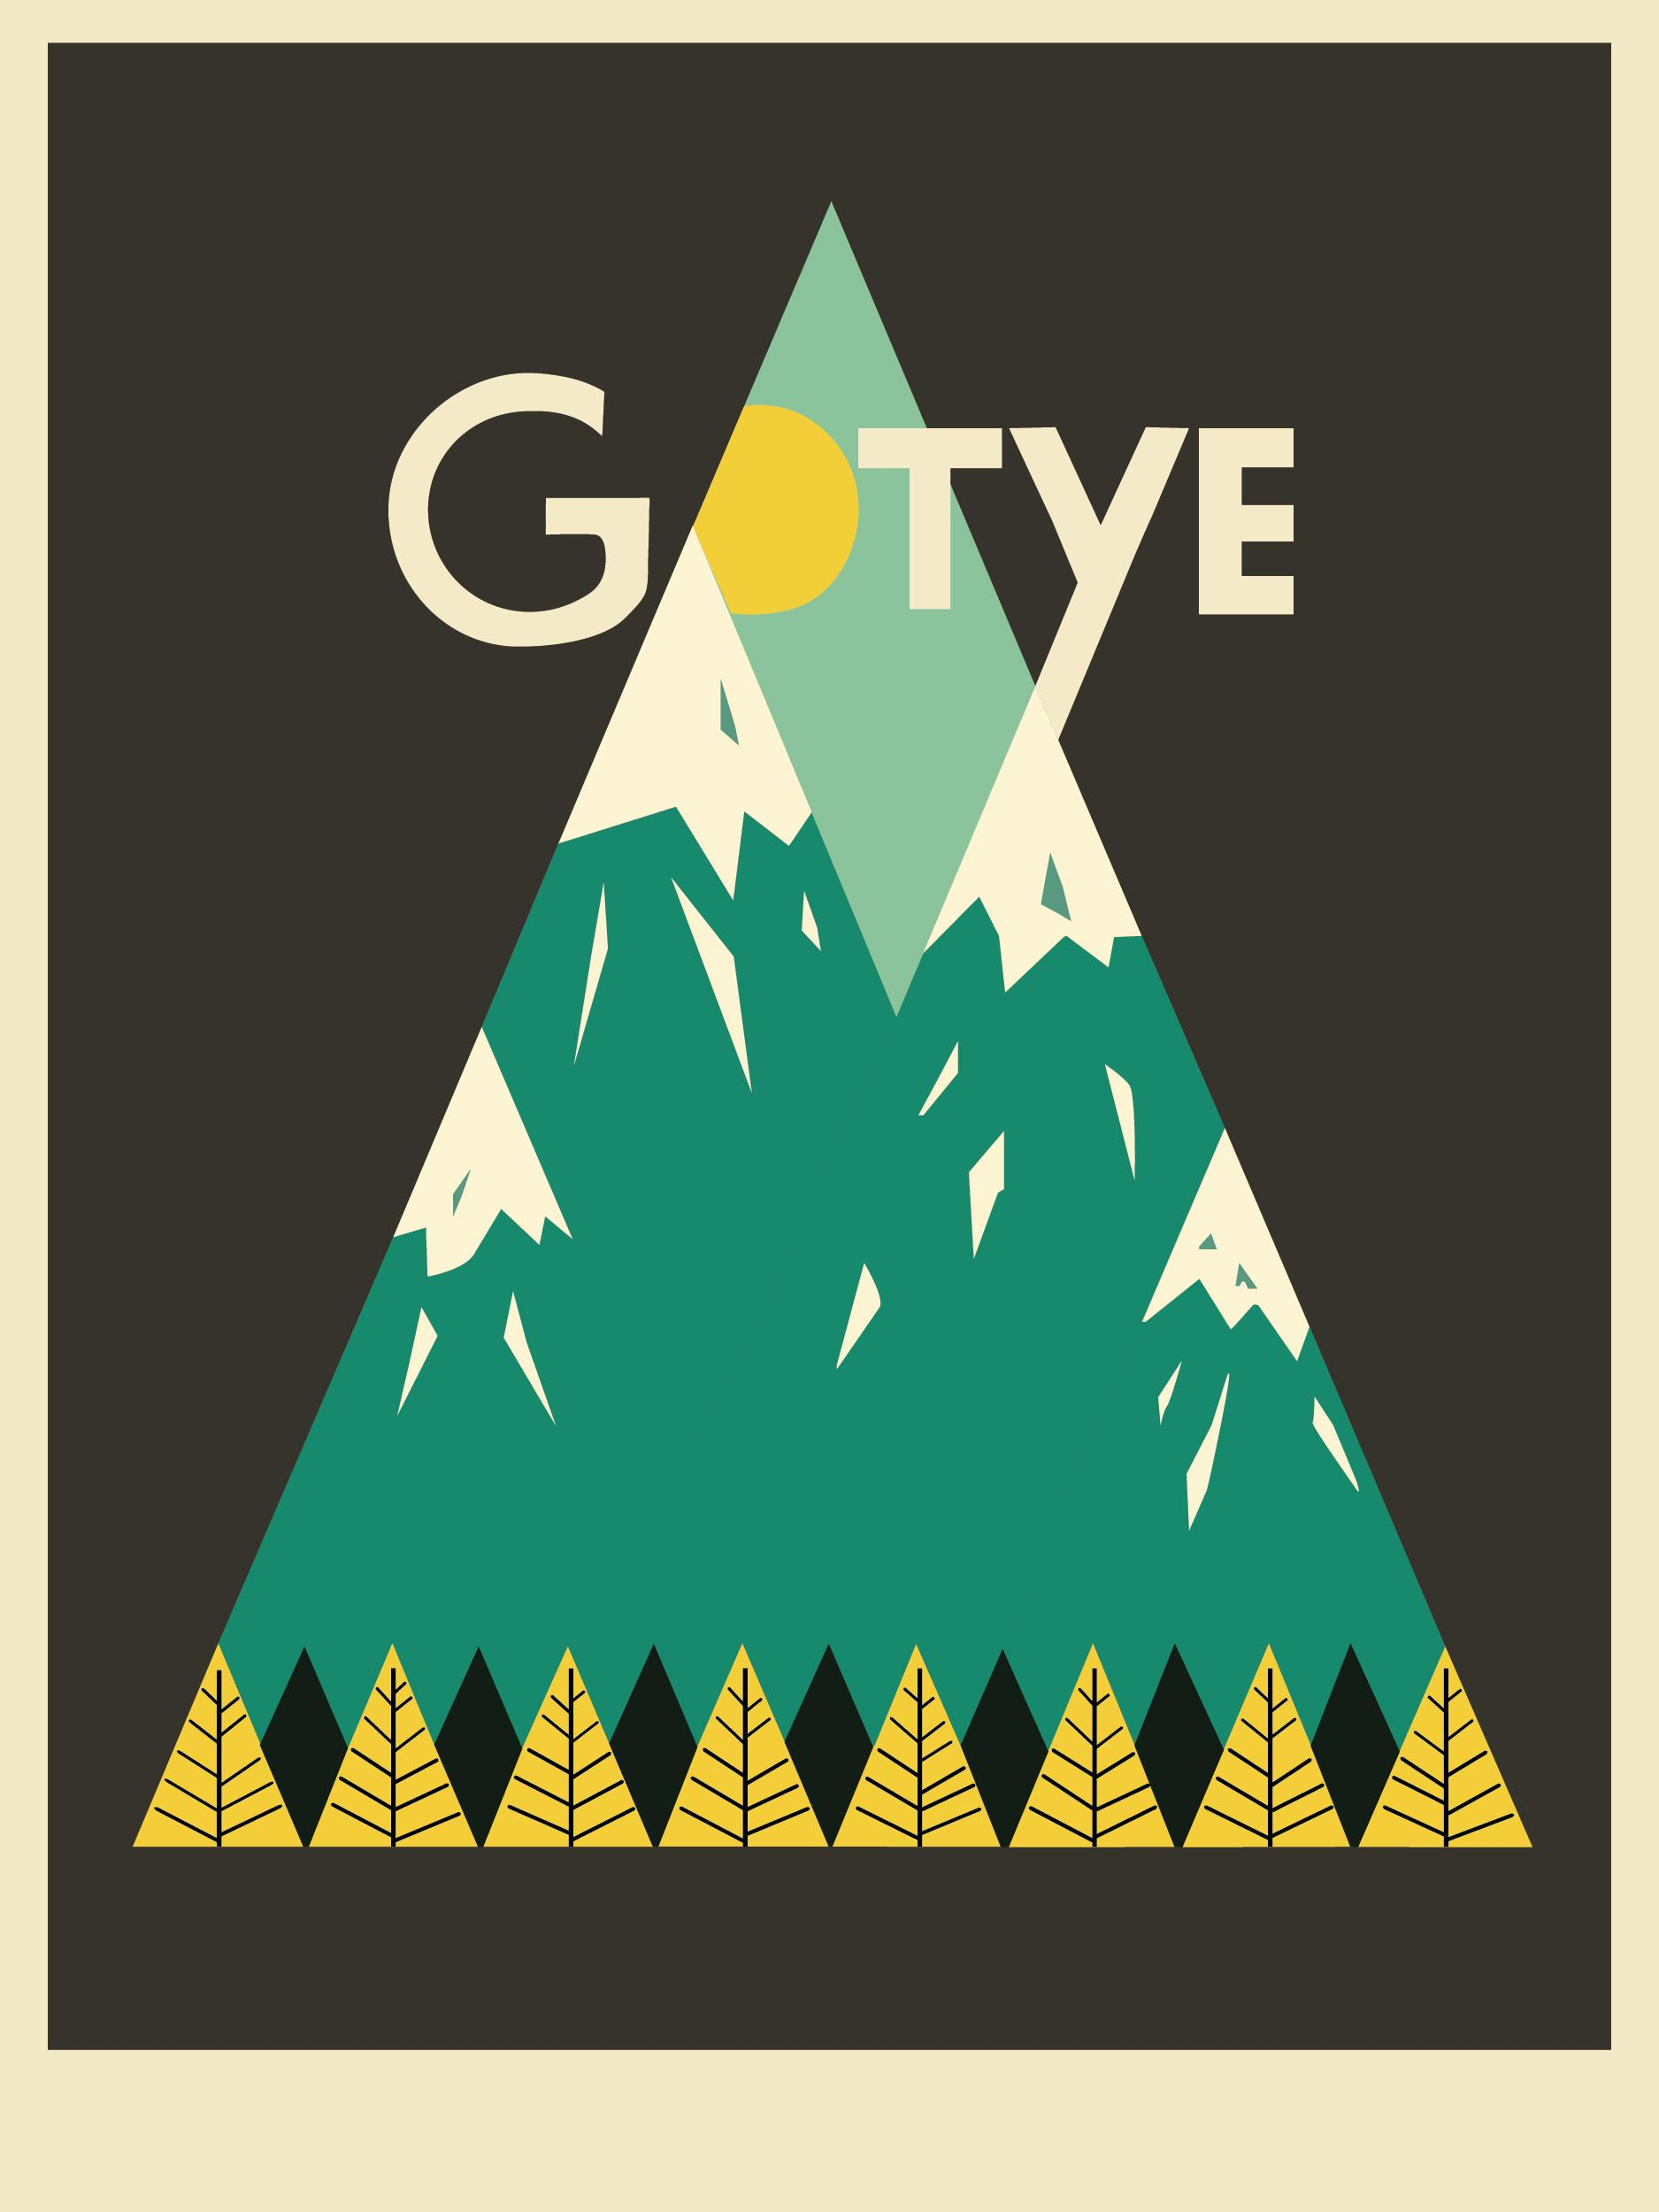 Gotye Poster - image 2 - student project